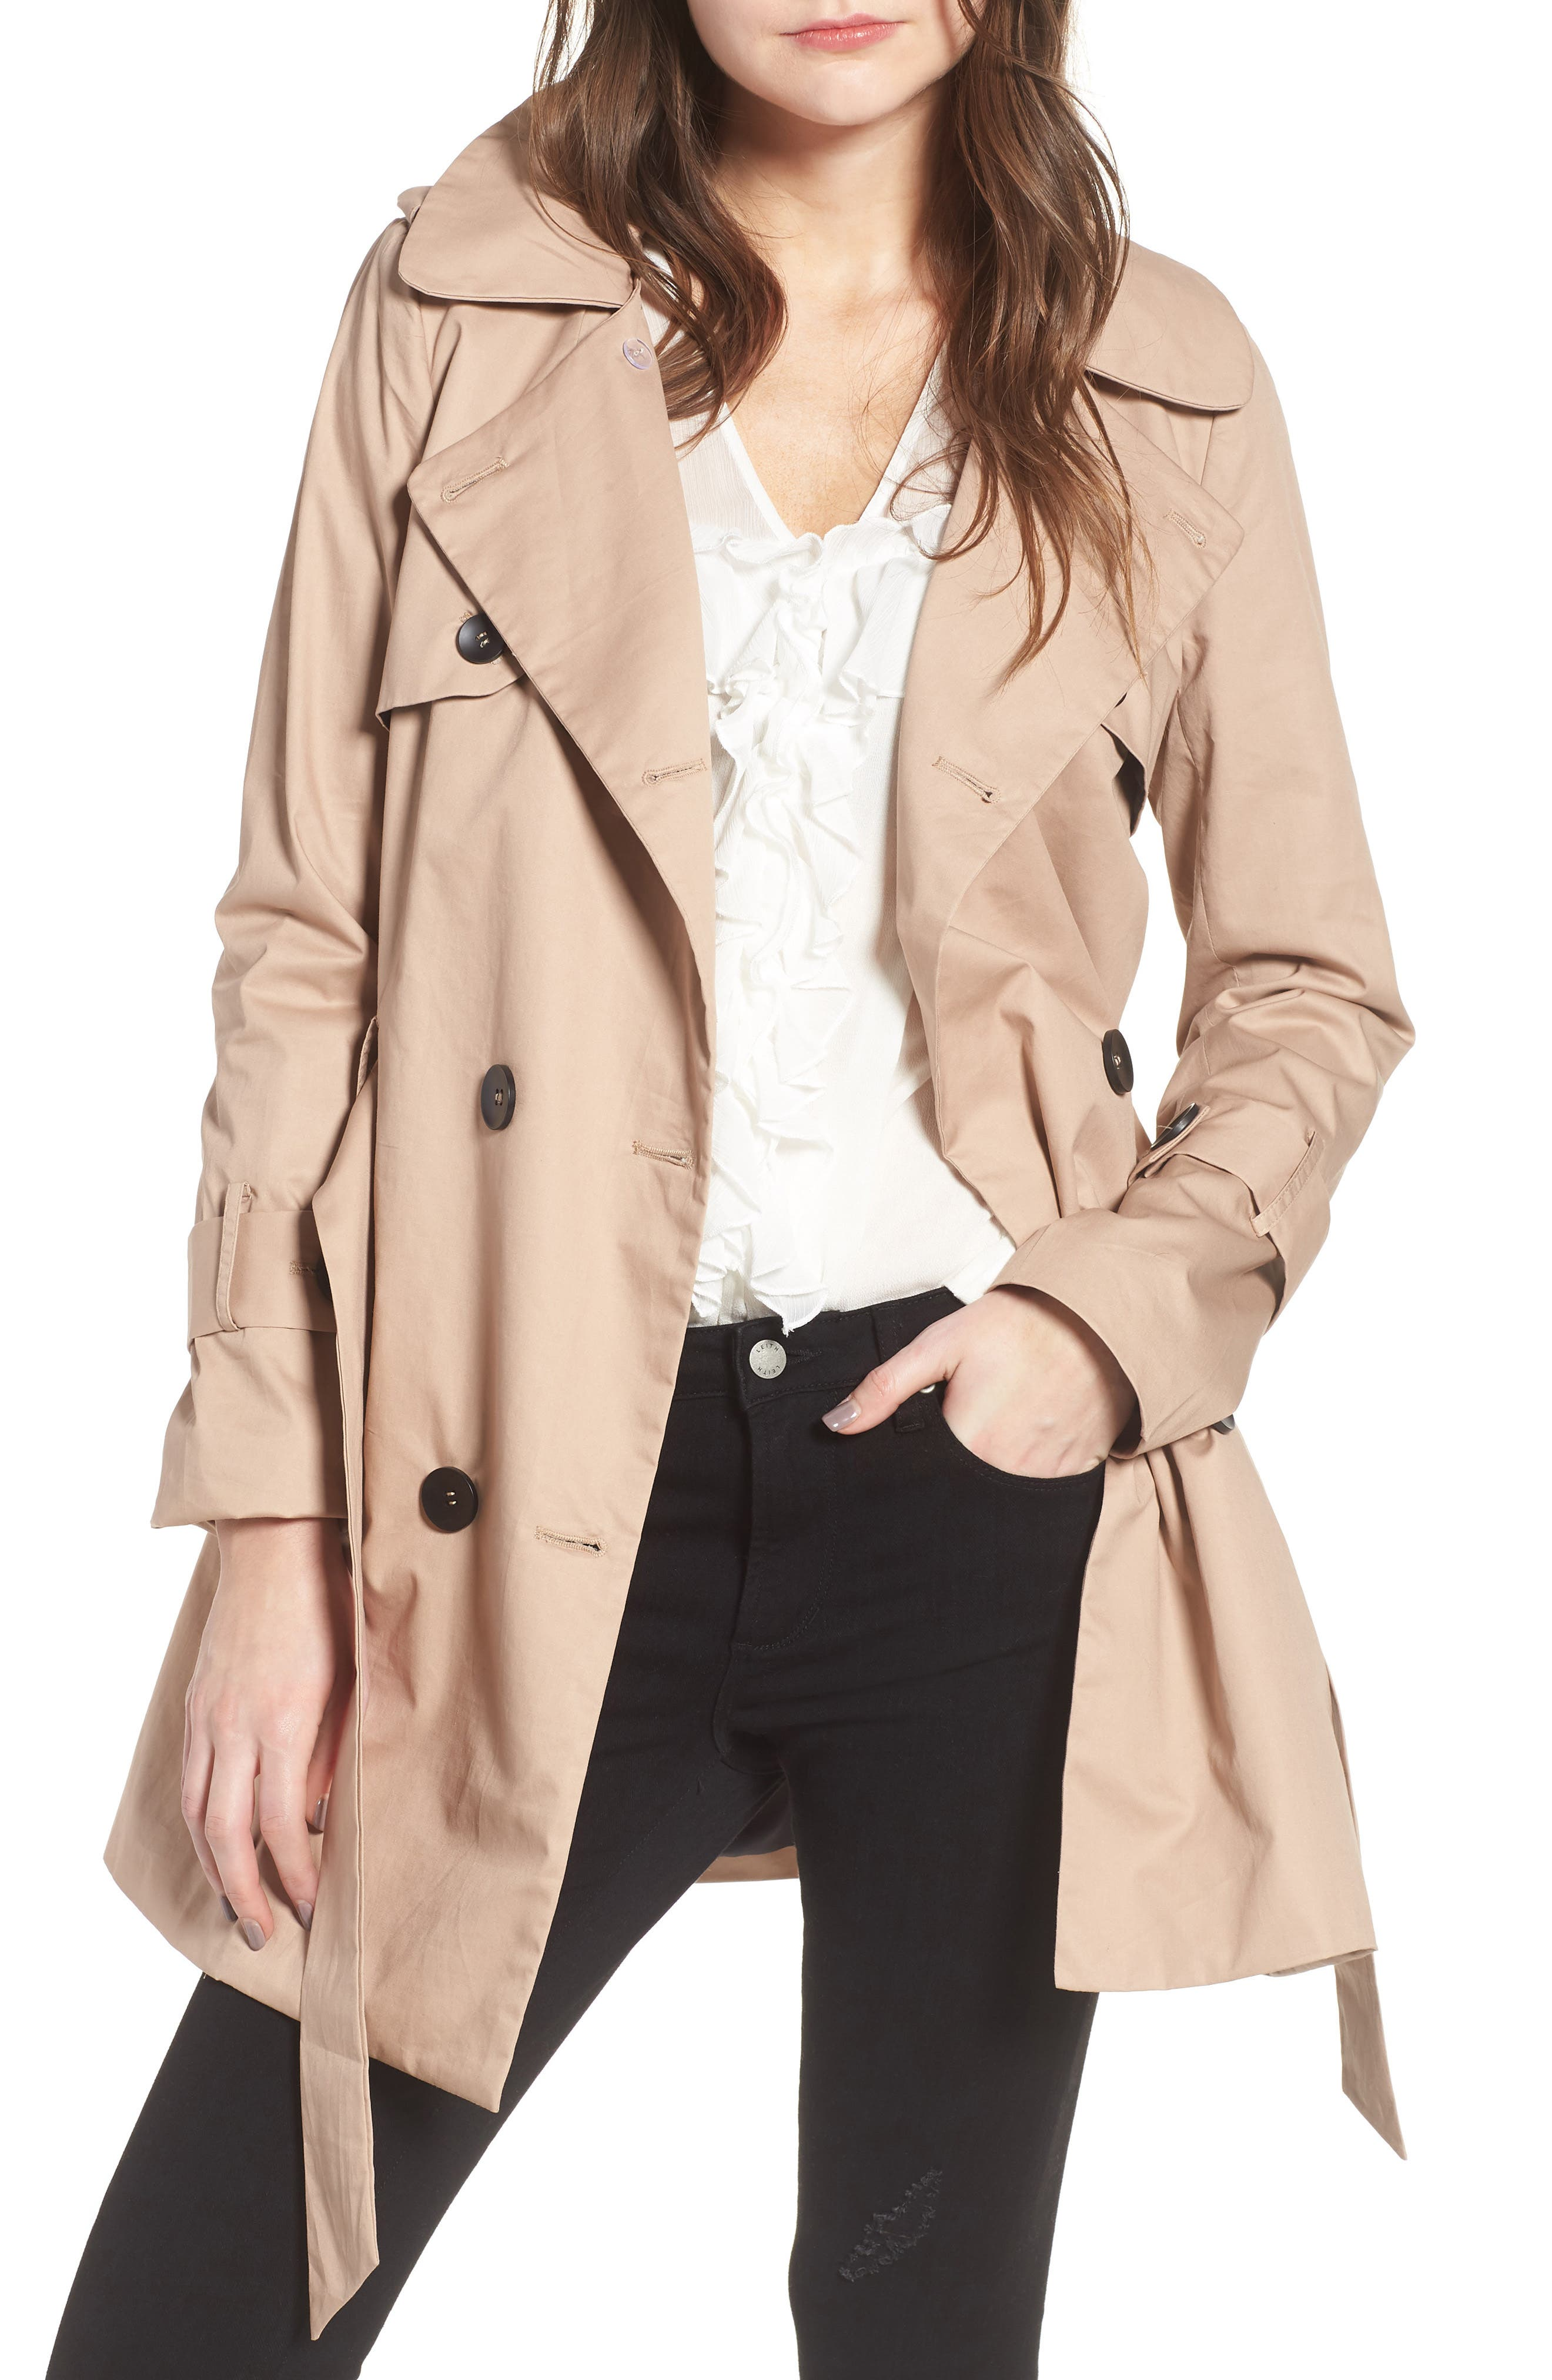 Moss Trench Coat,                             Main thumbnail 1, color,                             Sand